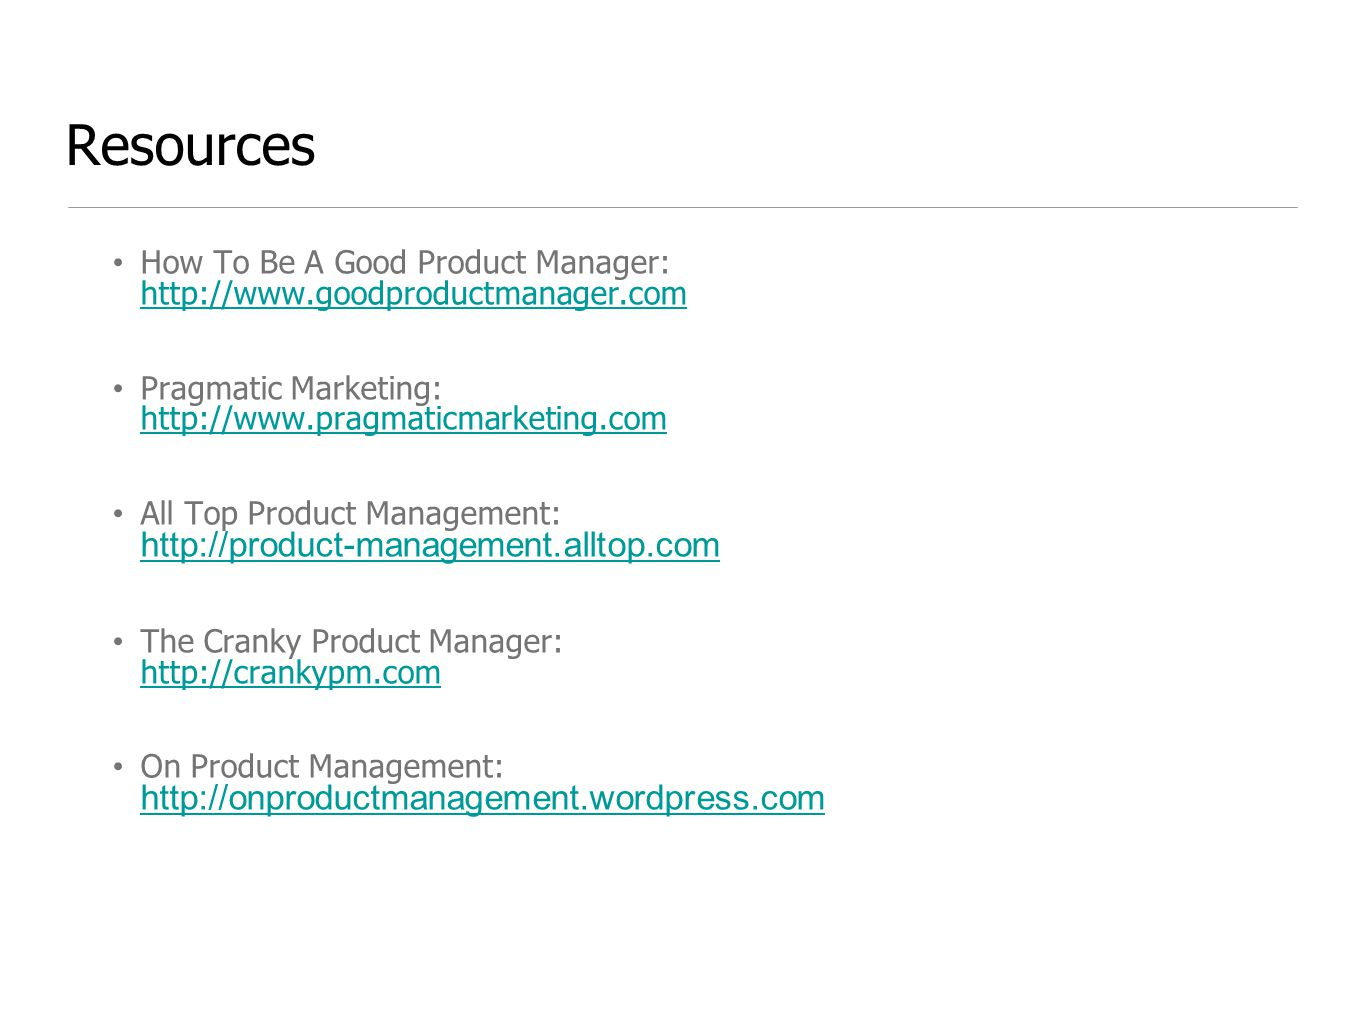 Resources How To Be A Good Product Manager: http://www.goodproductmanager.com.